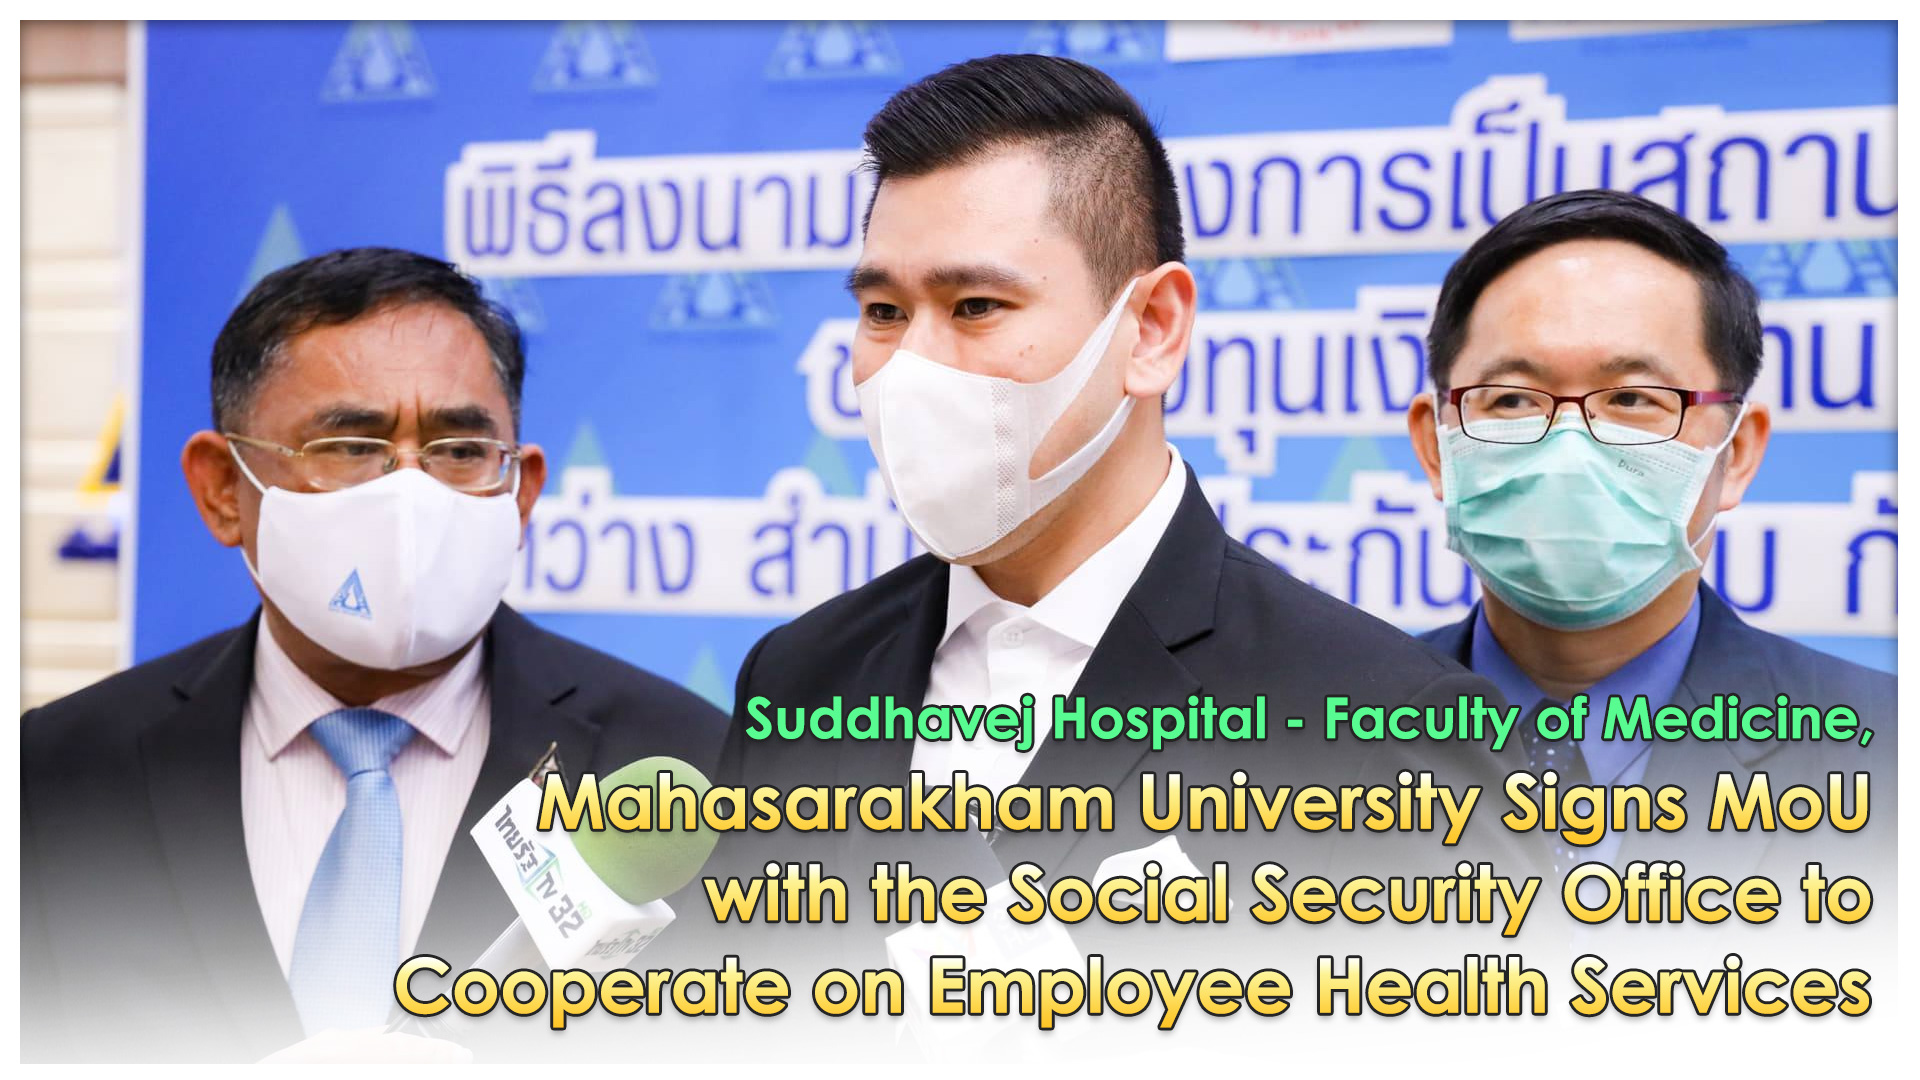 Suddhavej Hospital - Faculty of Medicine, Mahasarakham University Signs MoU with the Social Security Office to Cooperate on Employee Health Services.